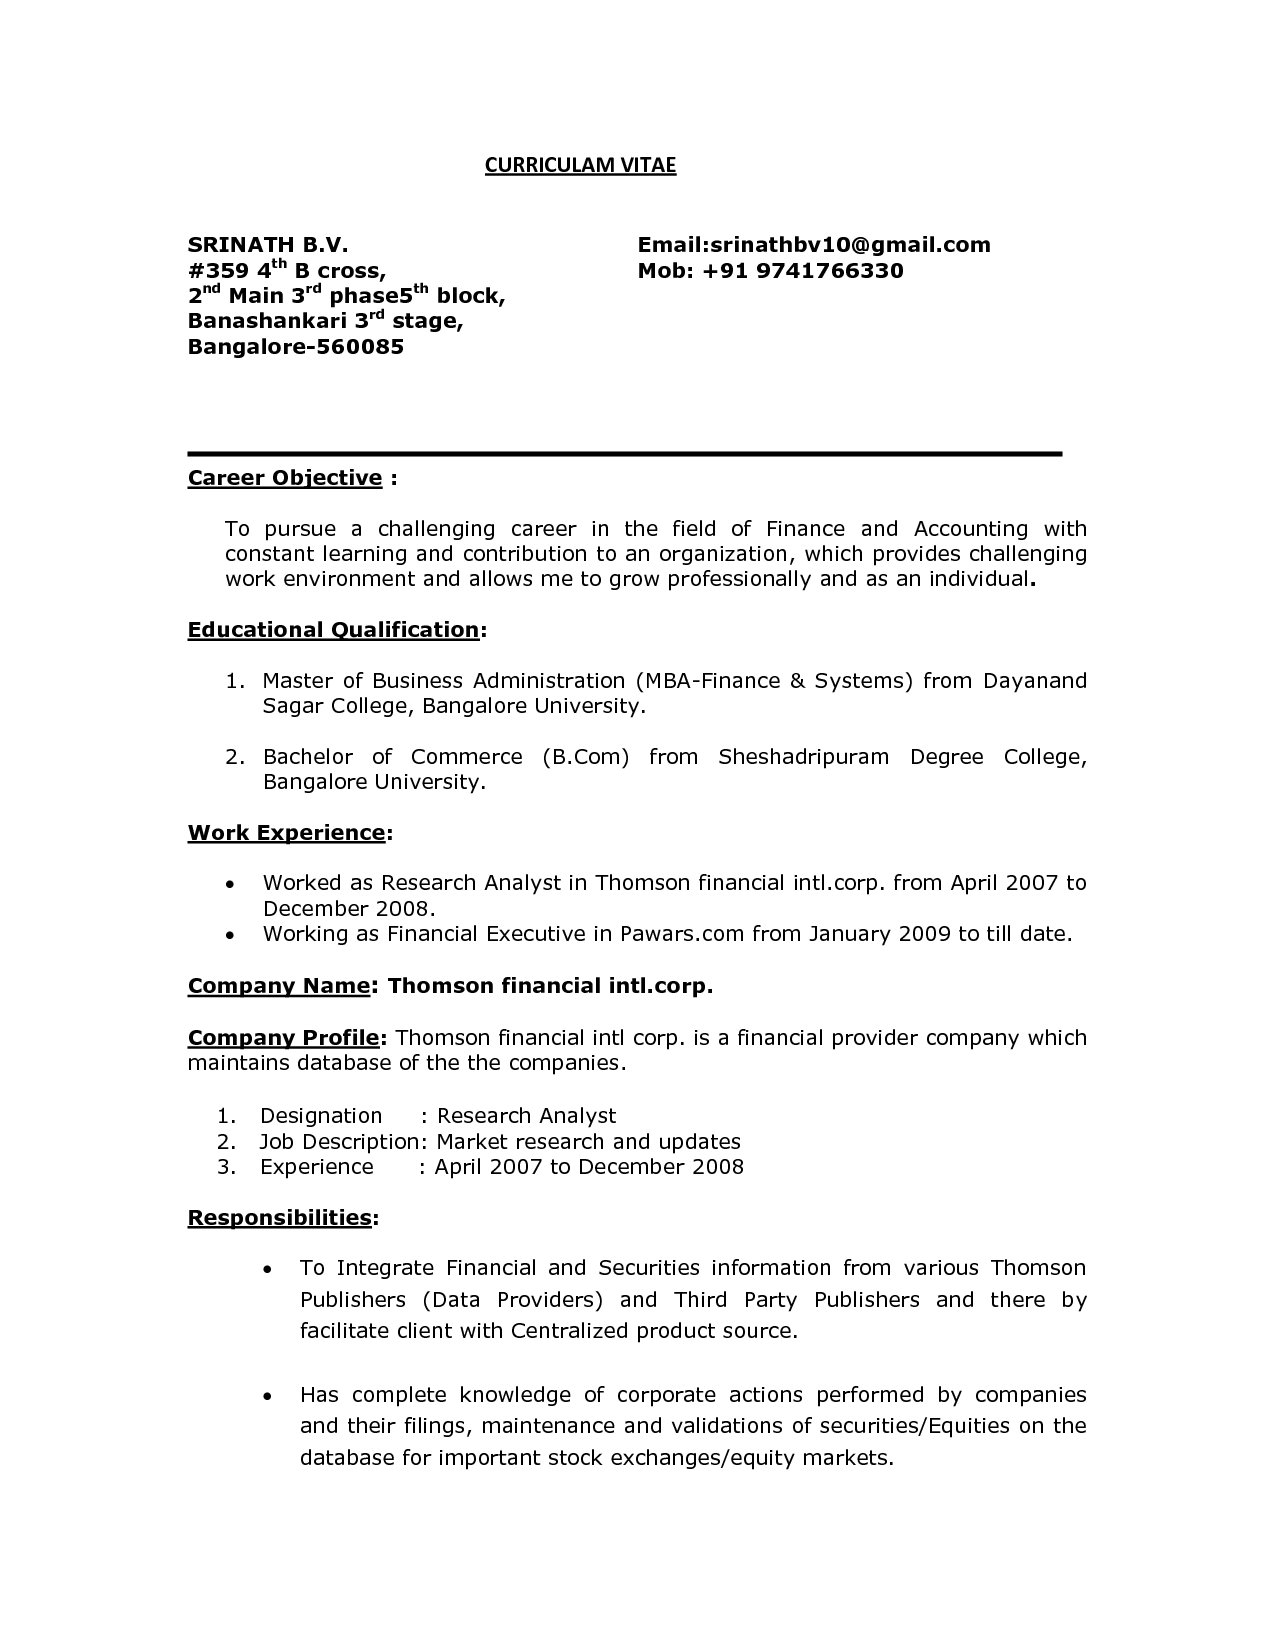 Entry Level career objective for resume for fresher in Reserach ...